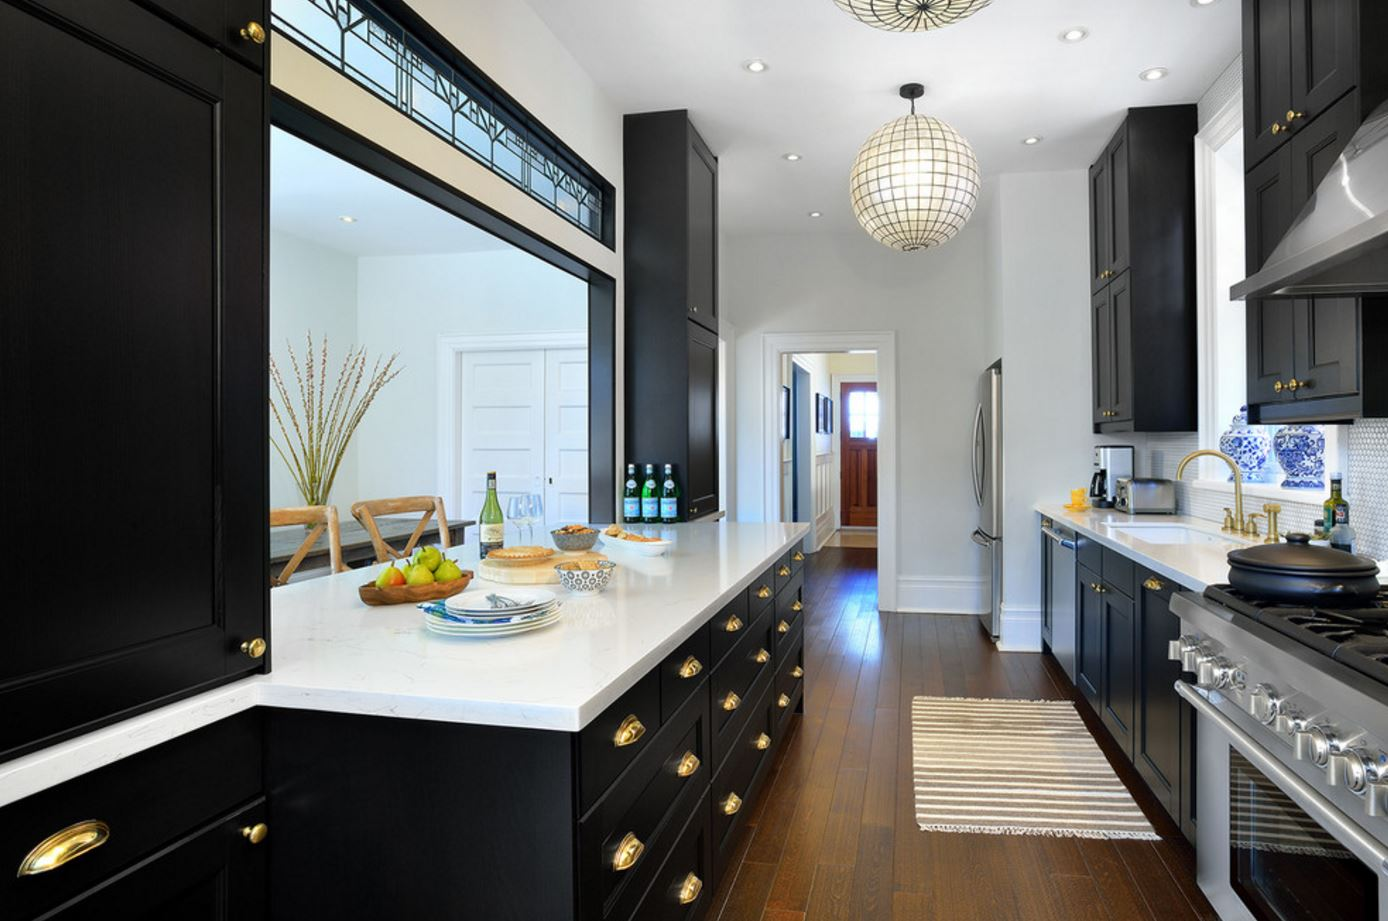 Unlacquered brass kitchen.JPG